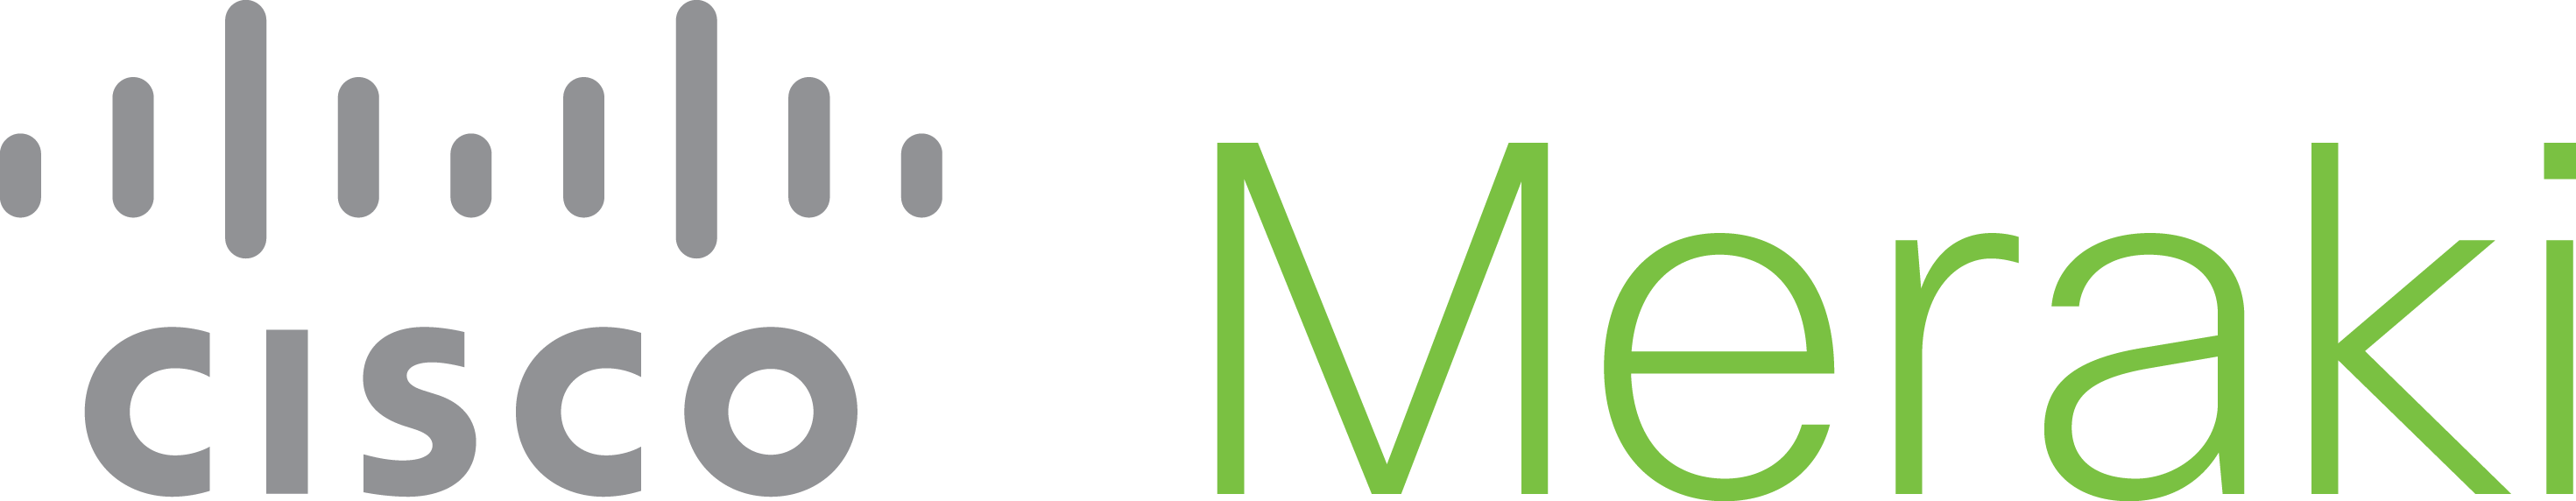 cisco meraki png logo #3767